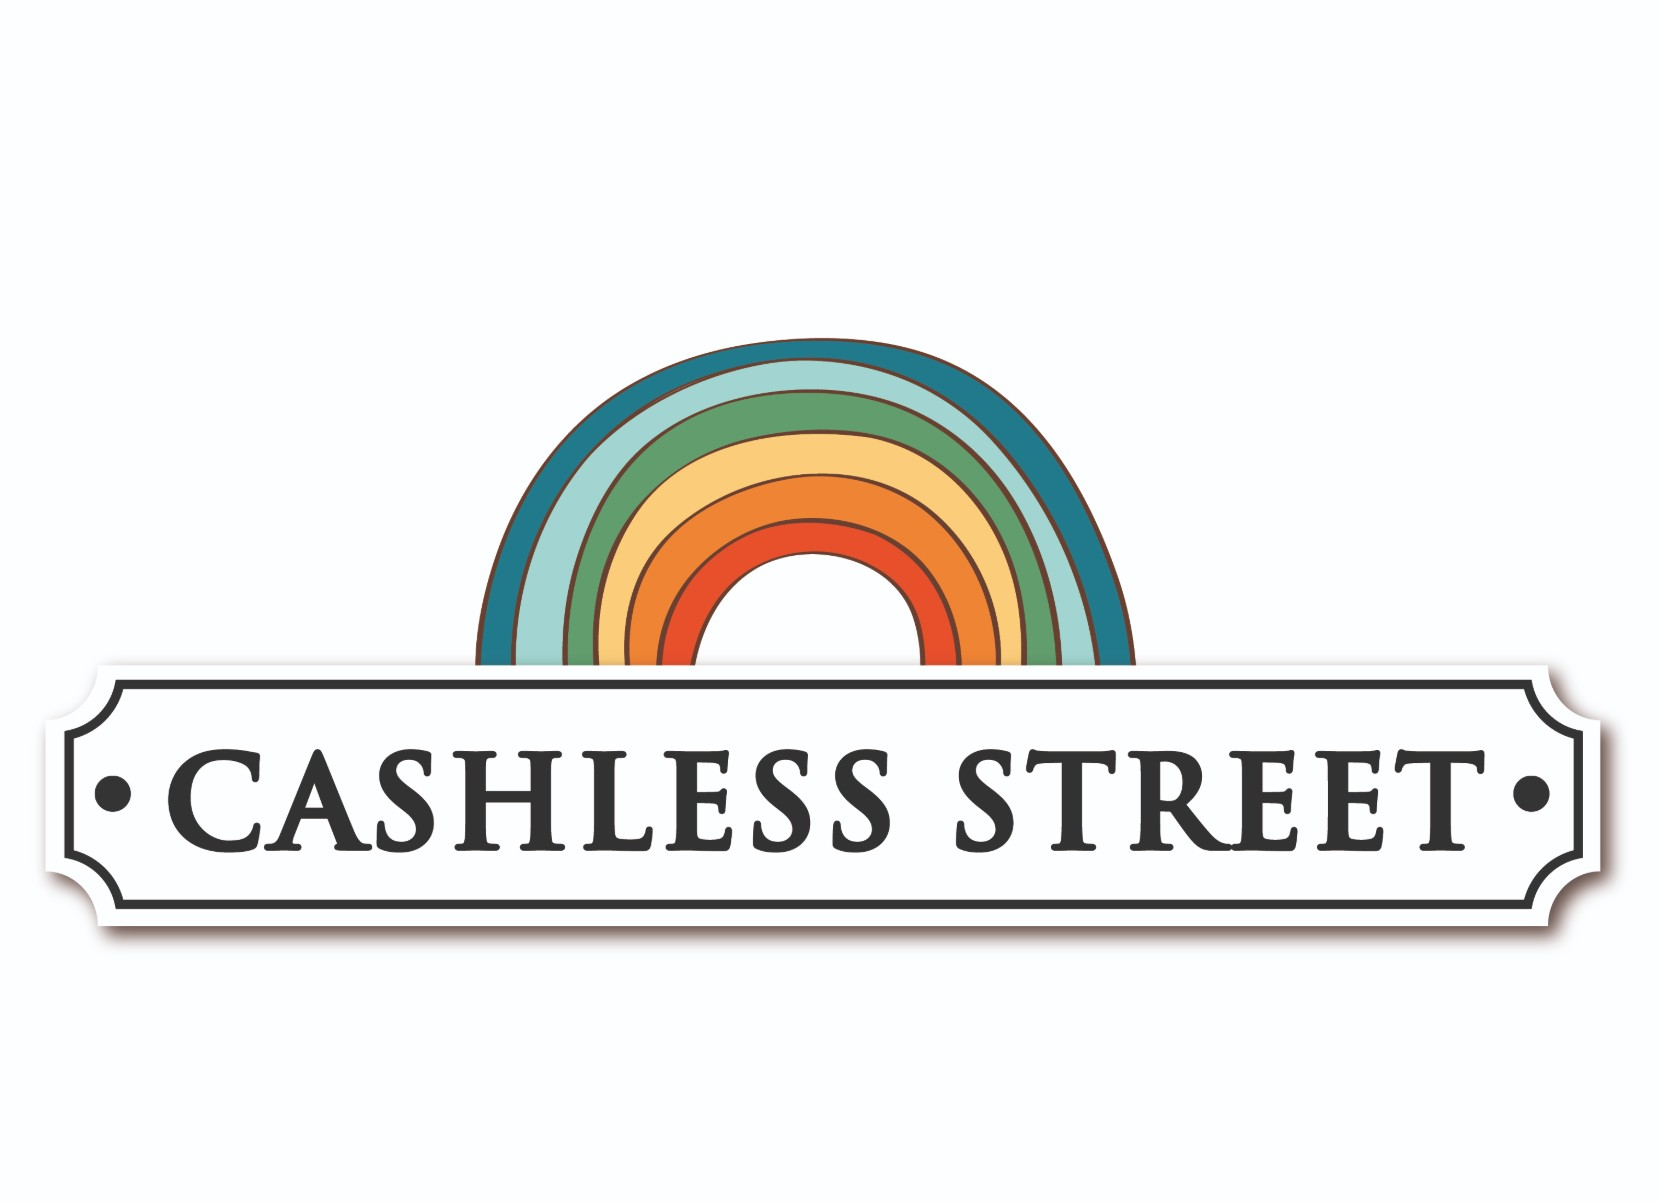 In June 2014, Handepay became headline news when we created the UK's first ever cashless street.